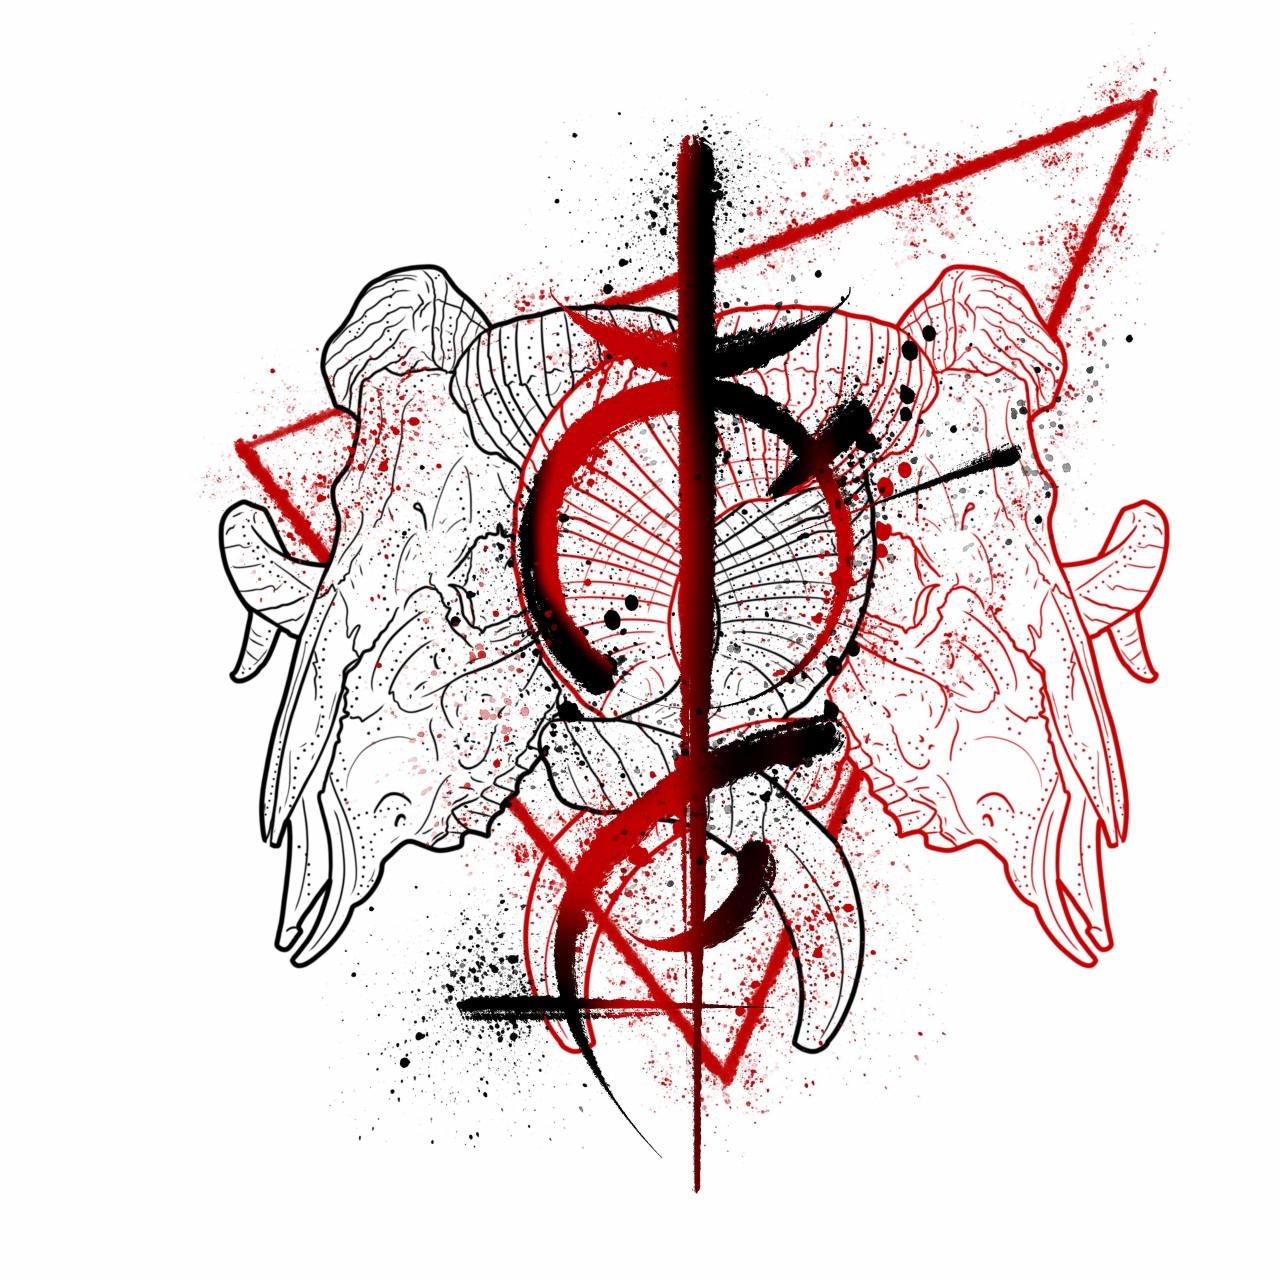 another sigil tattoo I made - I'm open for commissions - PM for custom designs